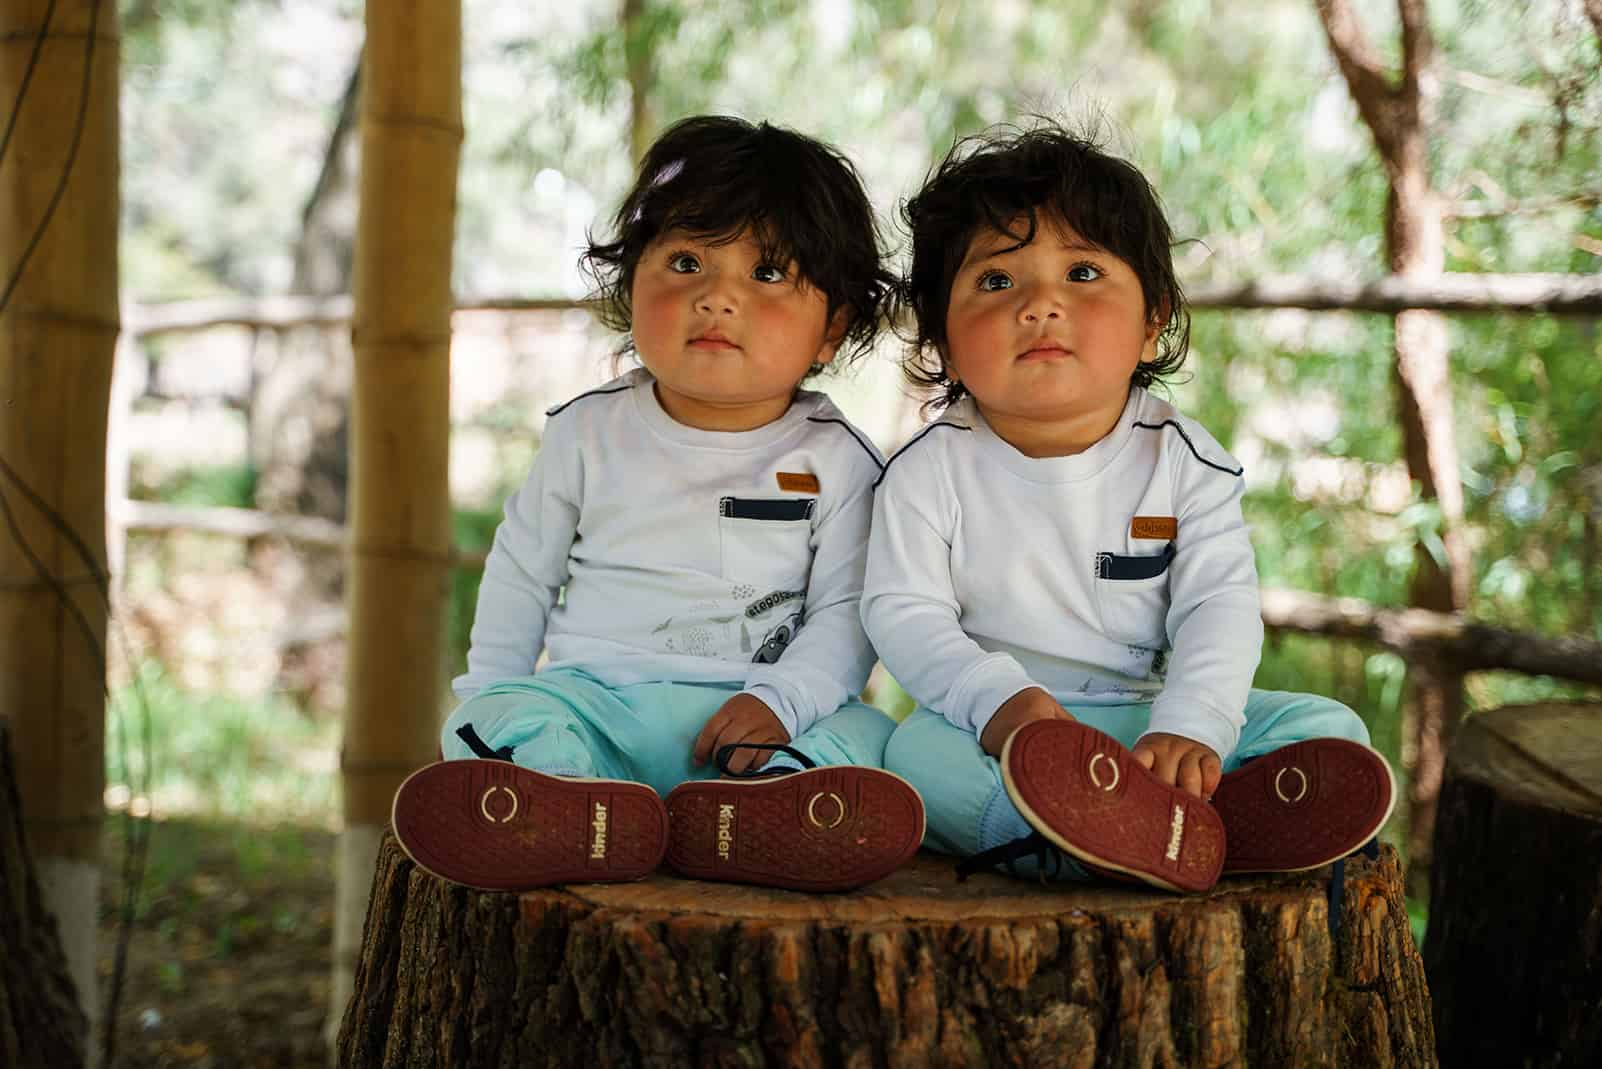 Two Peruvian toddlers sitting on a tree stump